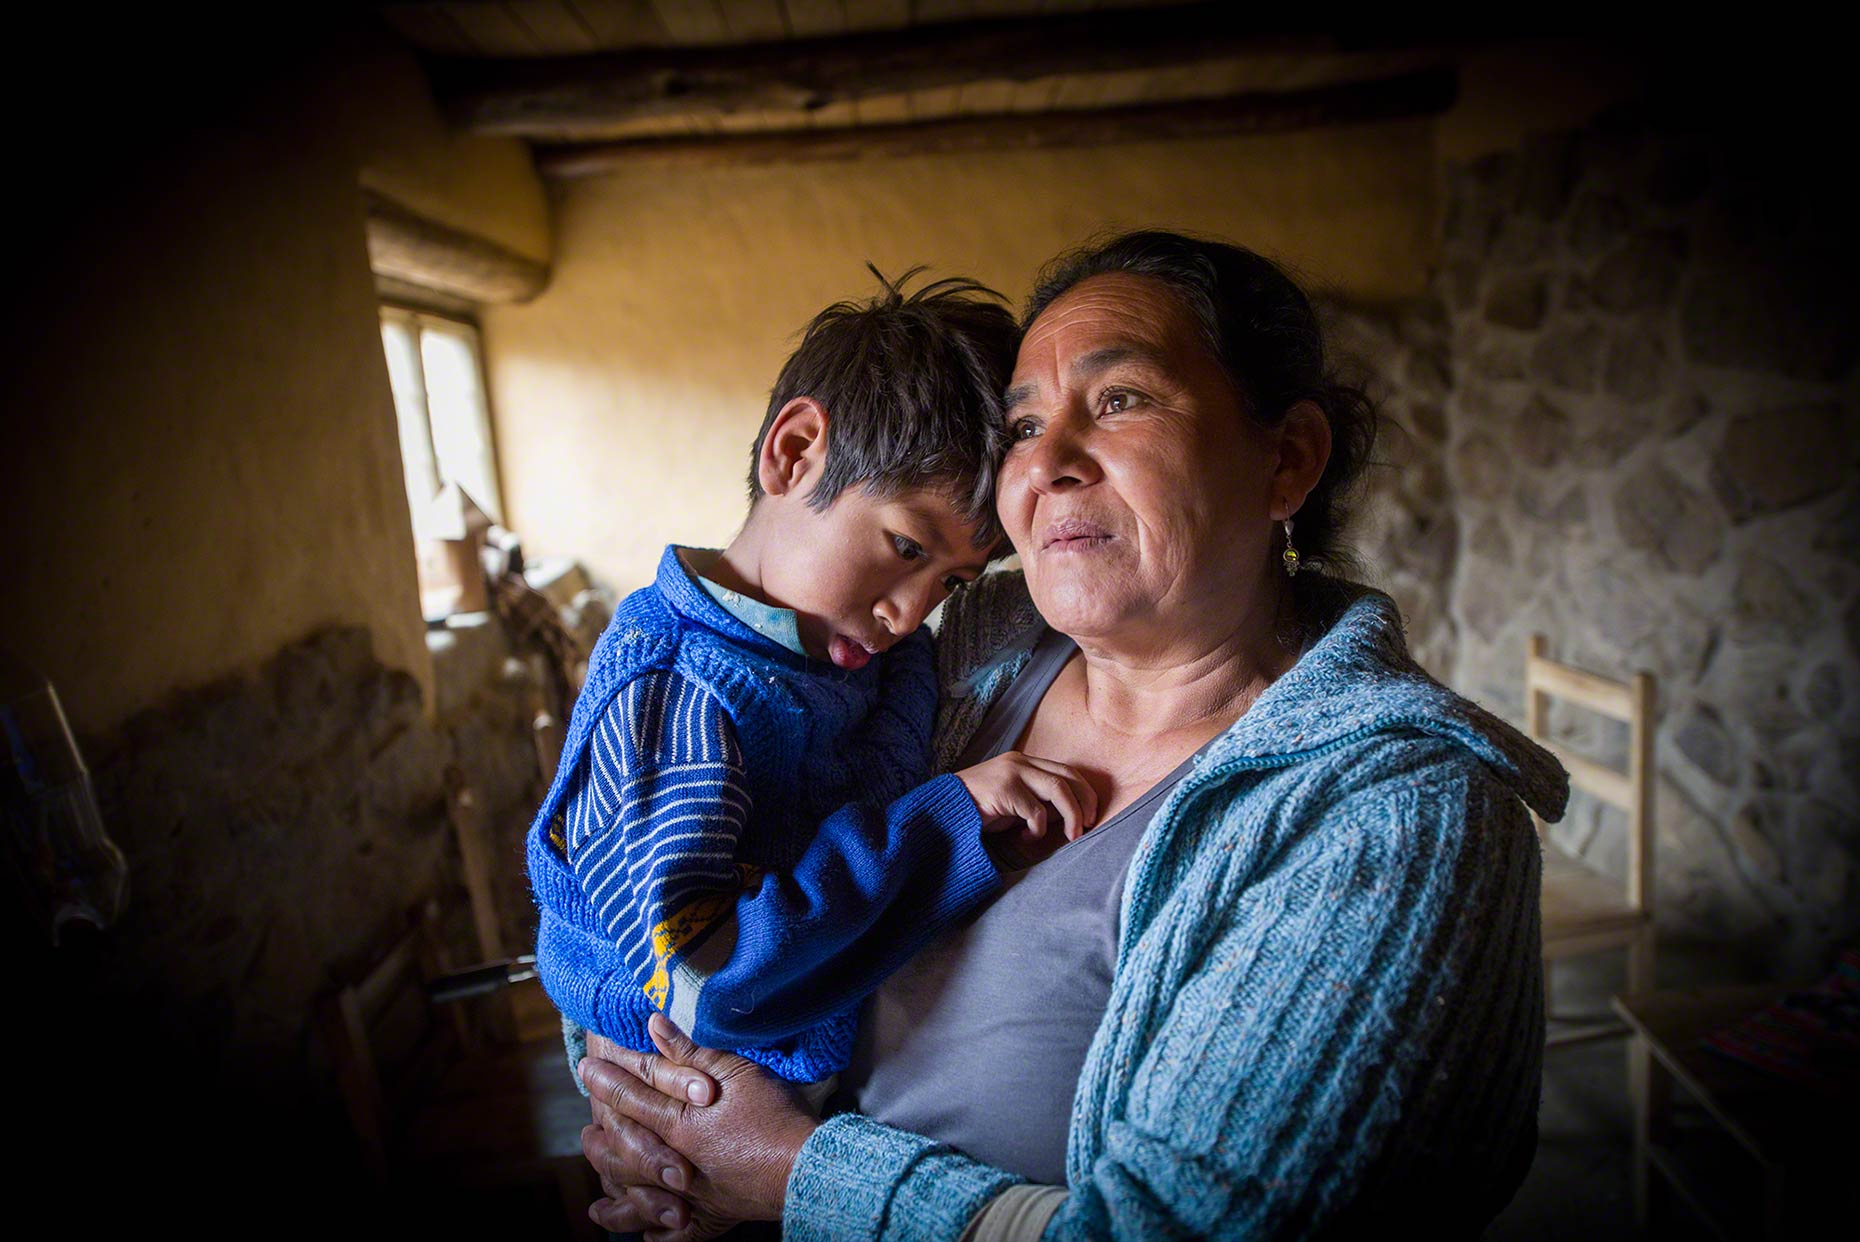 Fuerte vincula